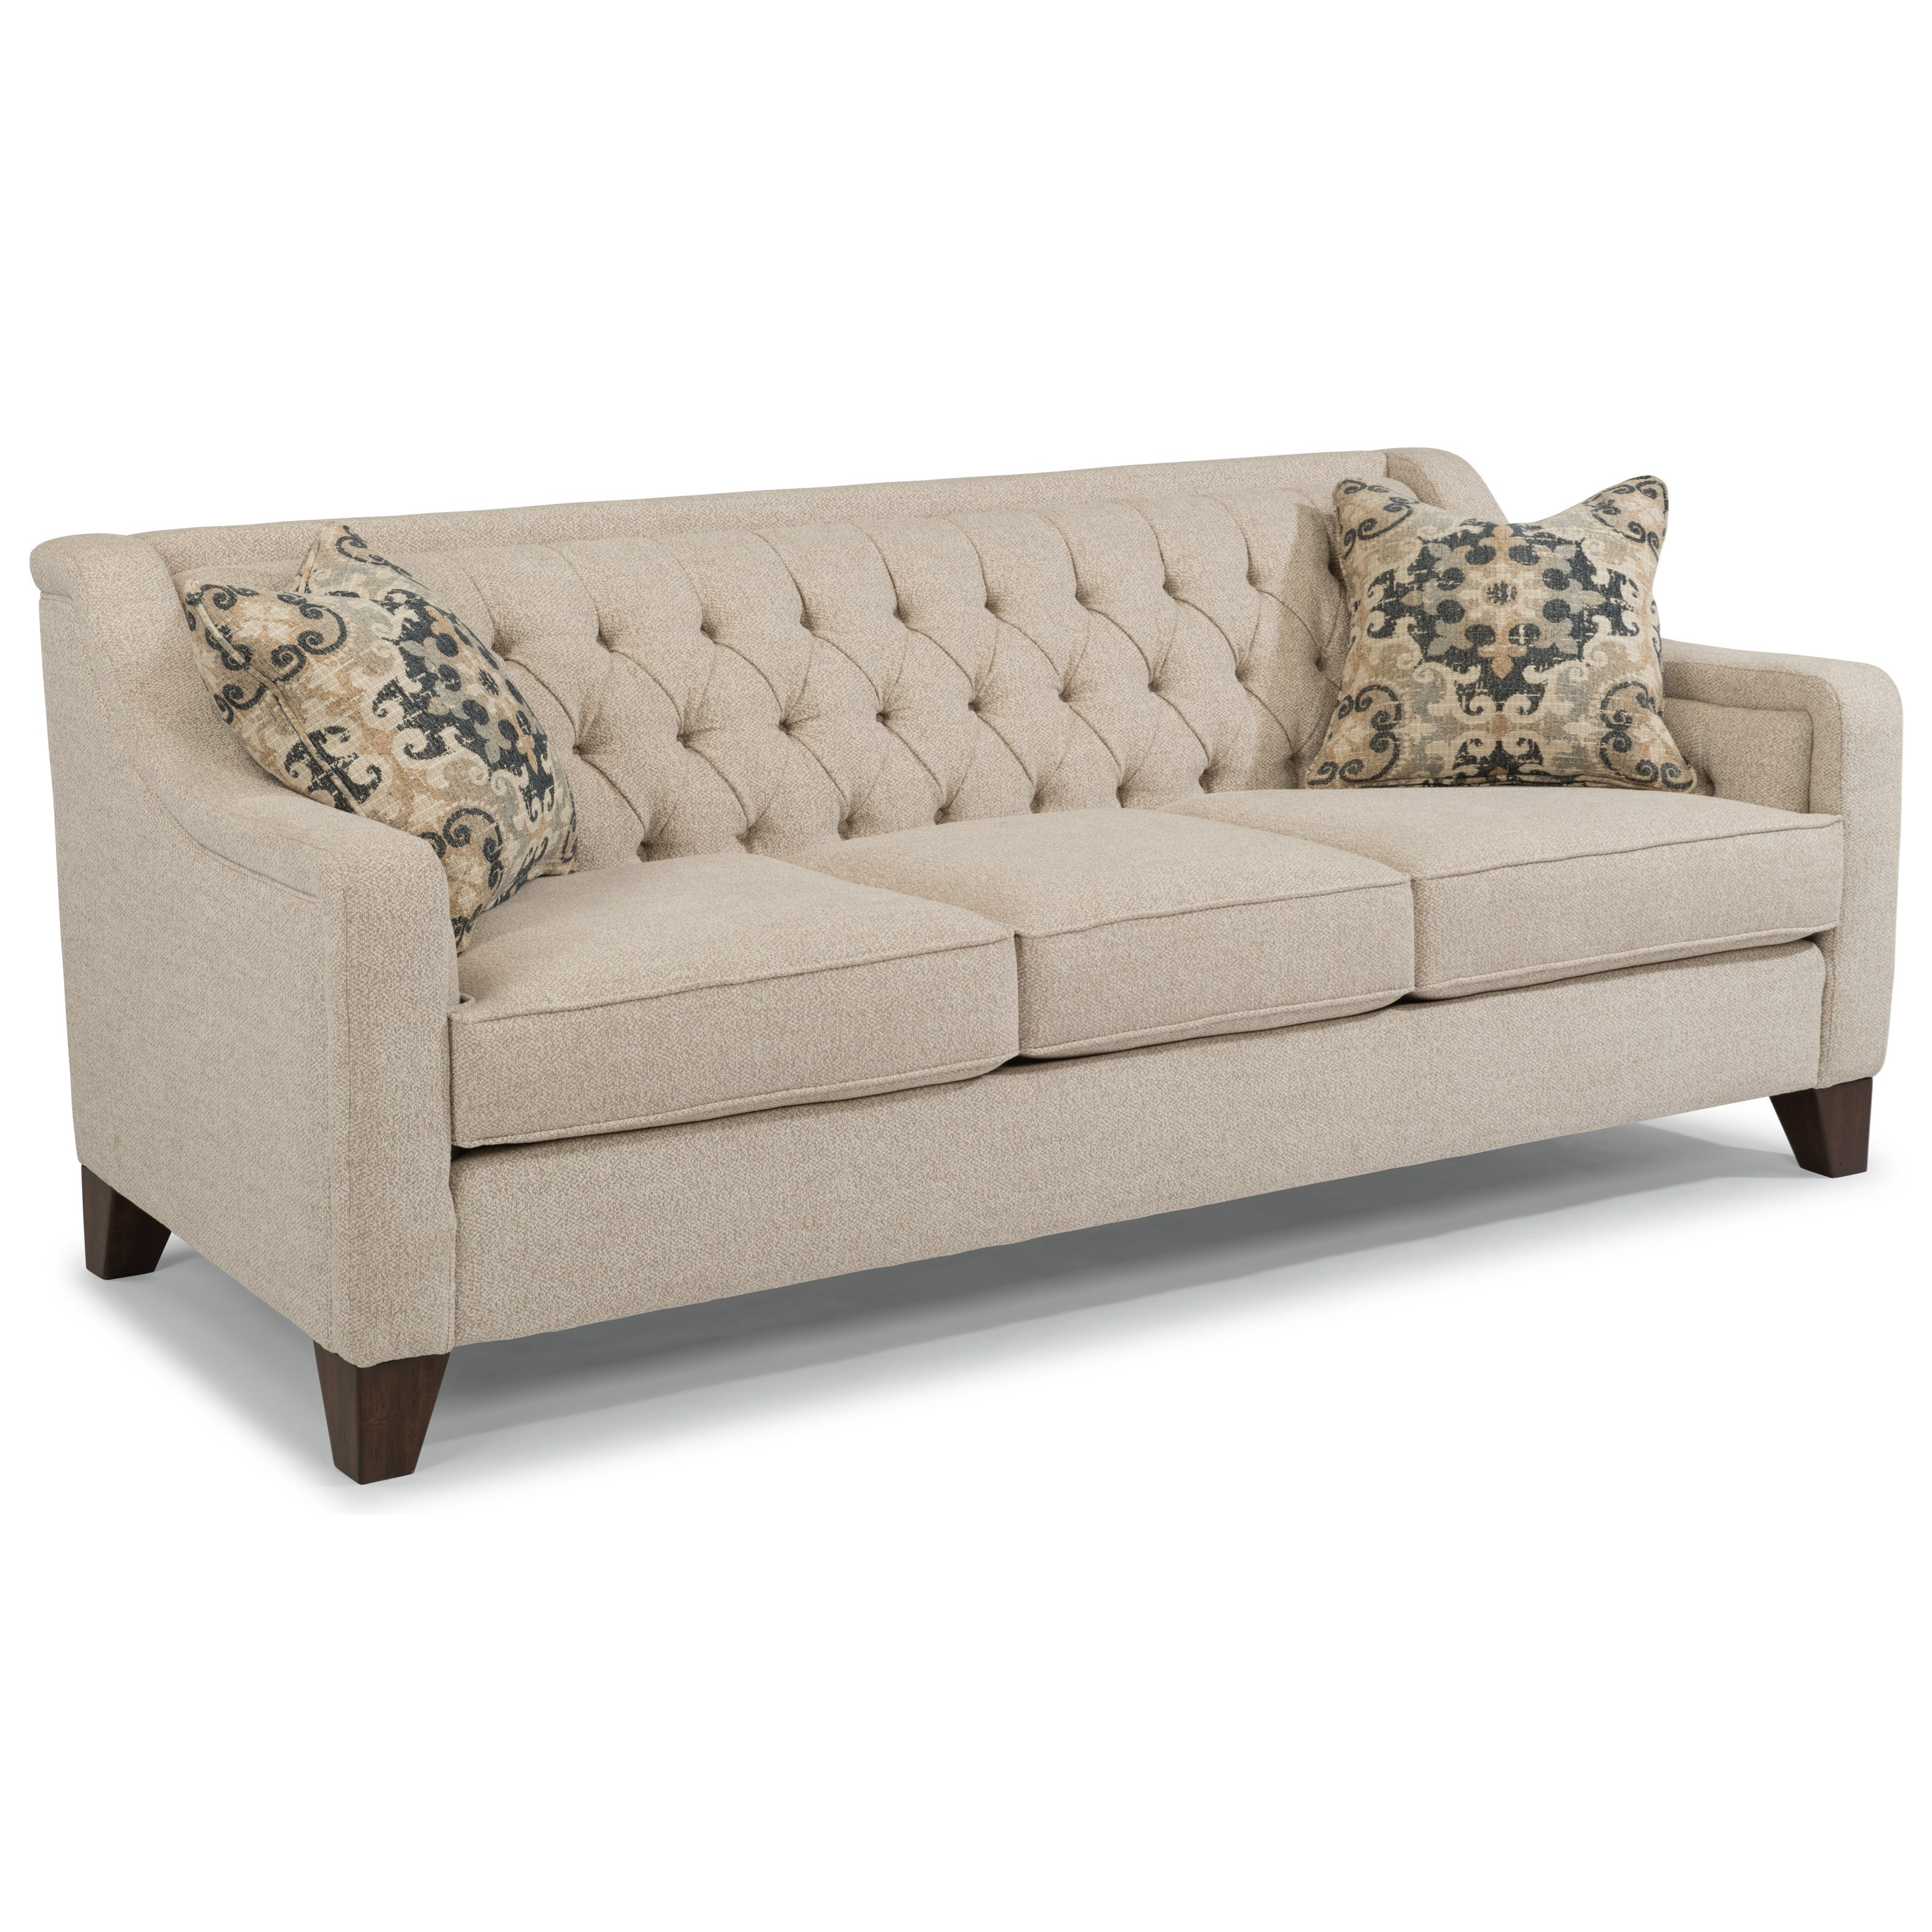 urban home sullivan sofa bed small spaces flexsteel 7103 31 contemporary with tufted